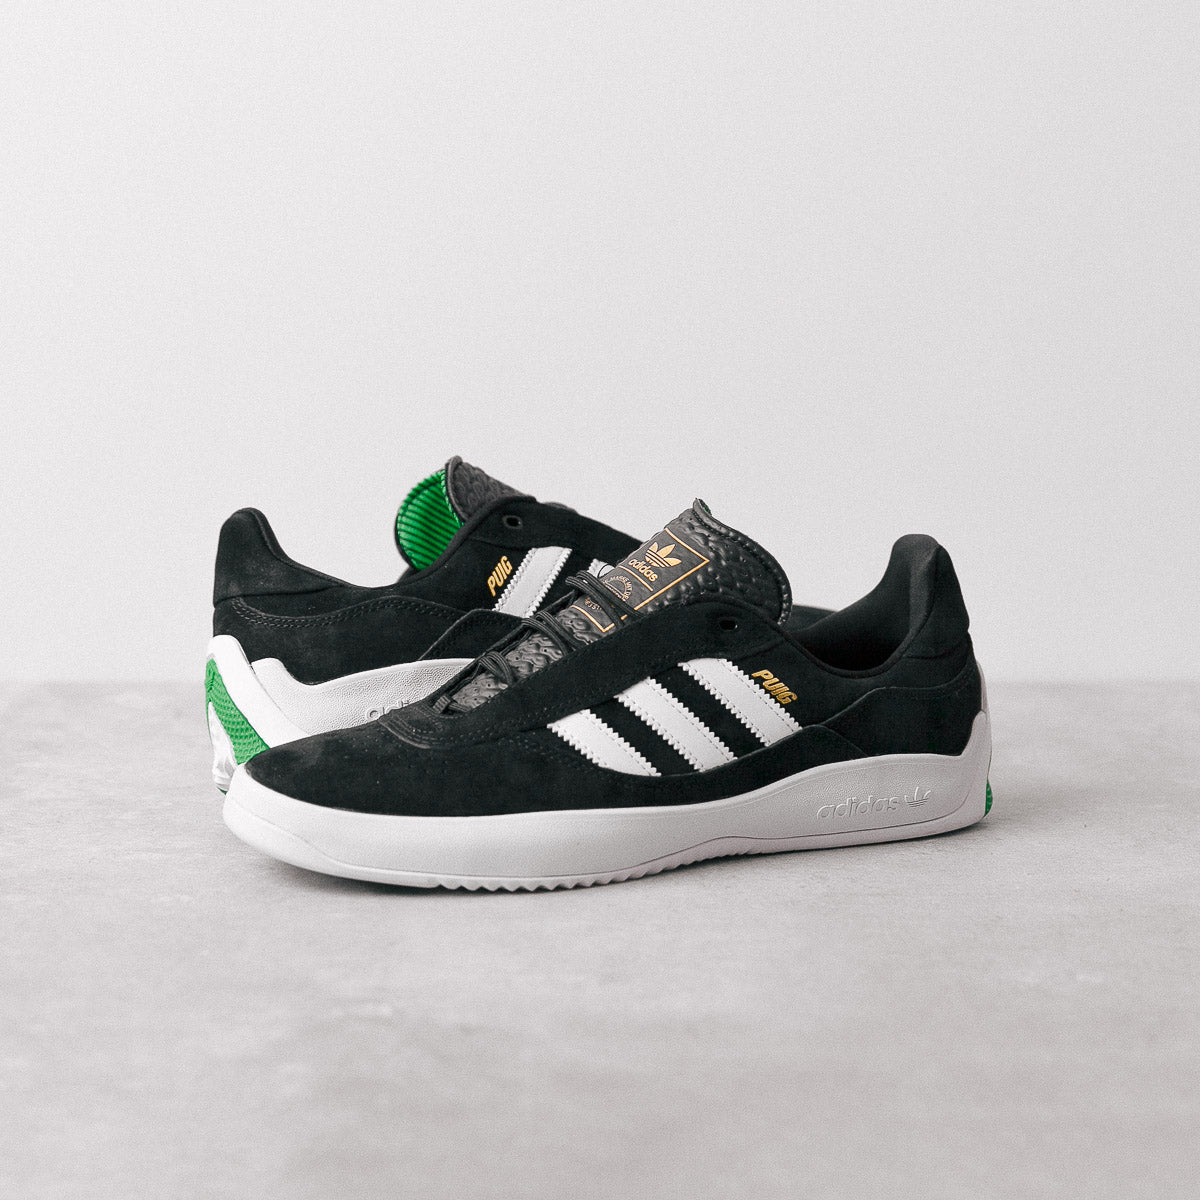 adidas Skateboarding: New In Footwear 2021 | Flatspot